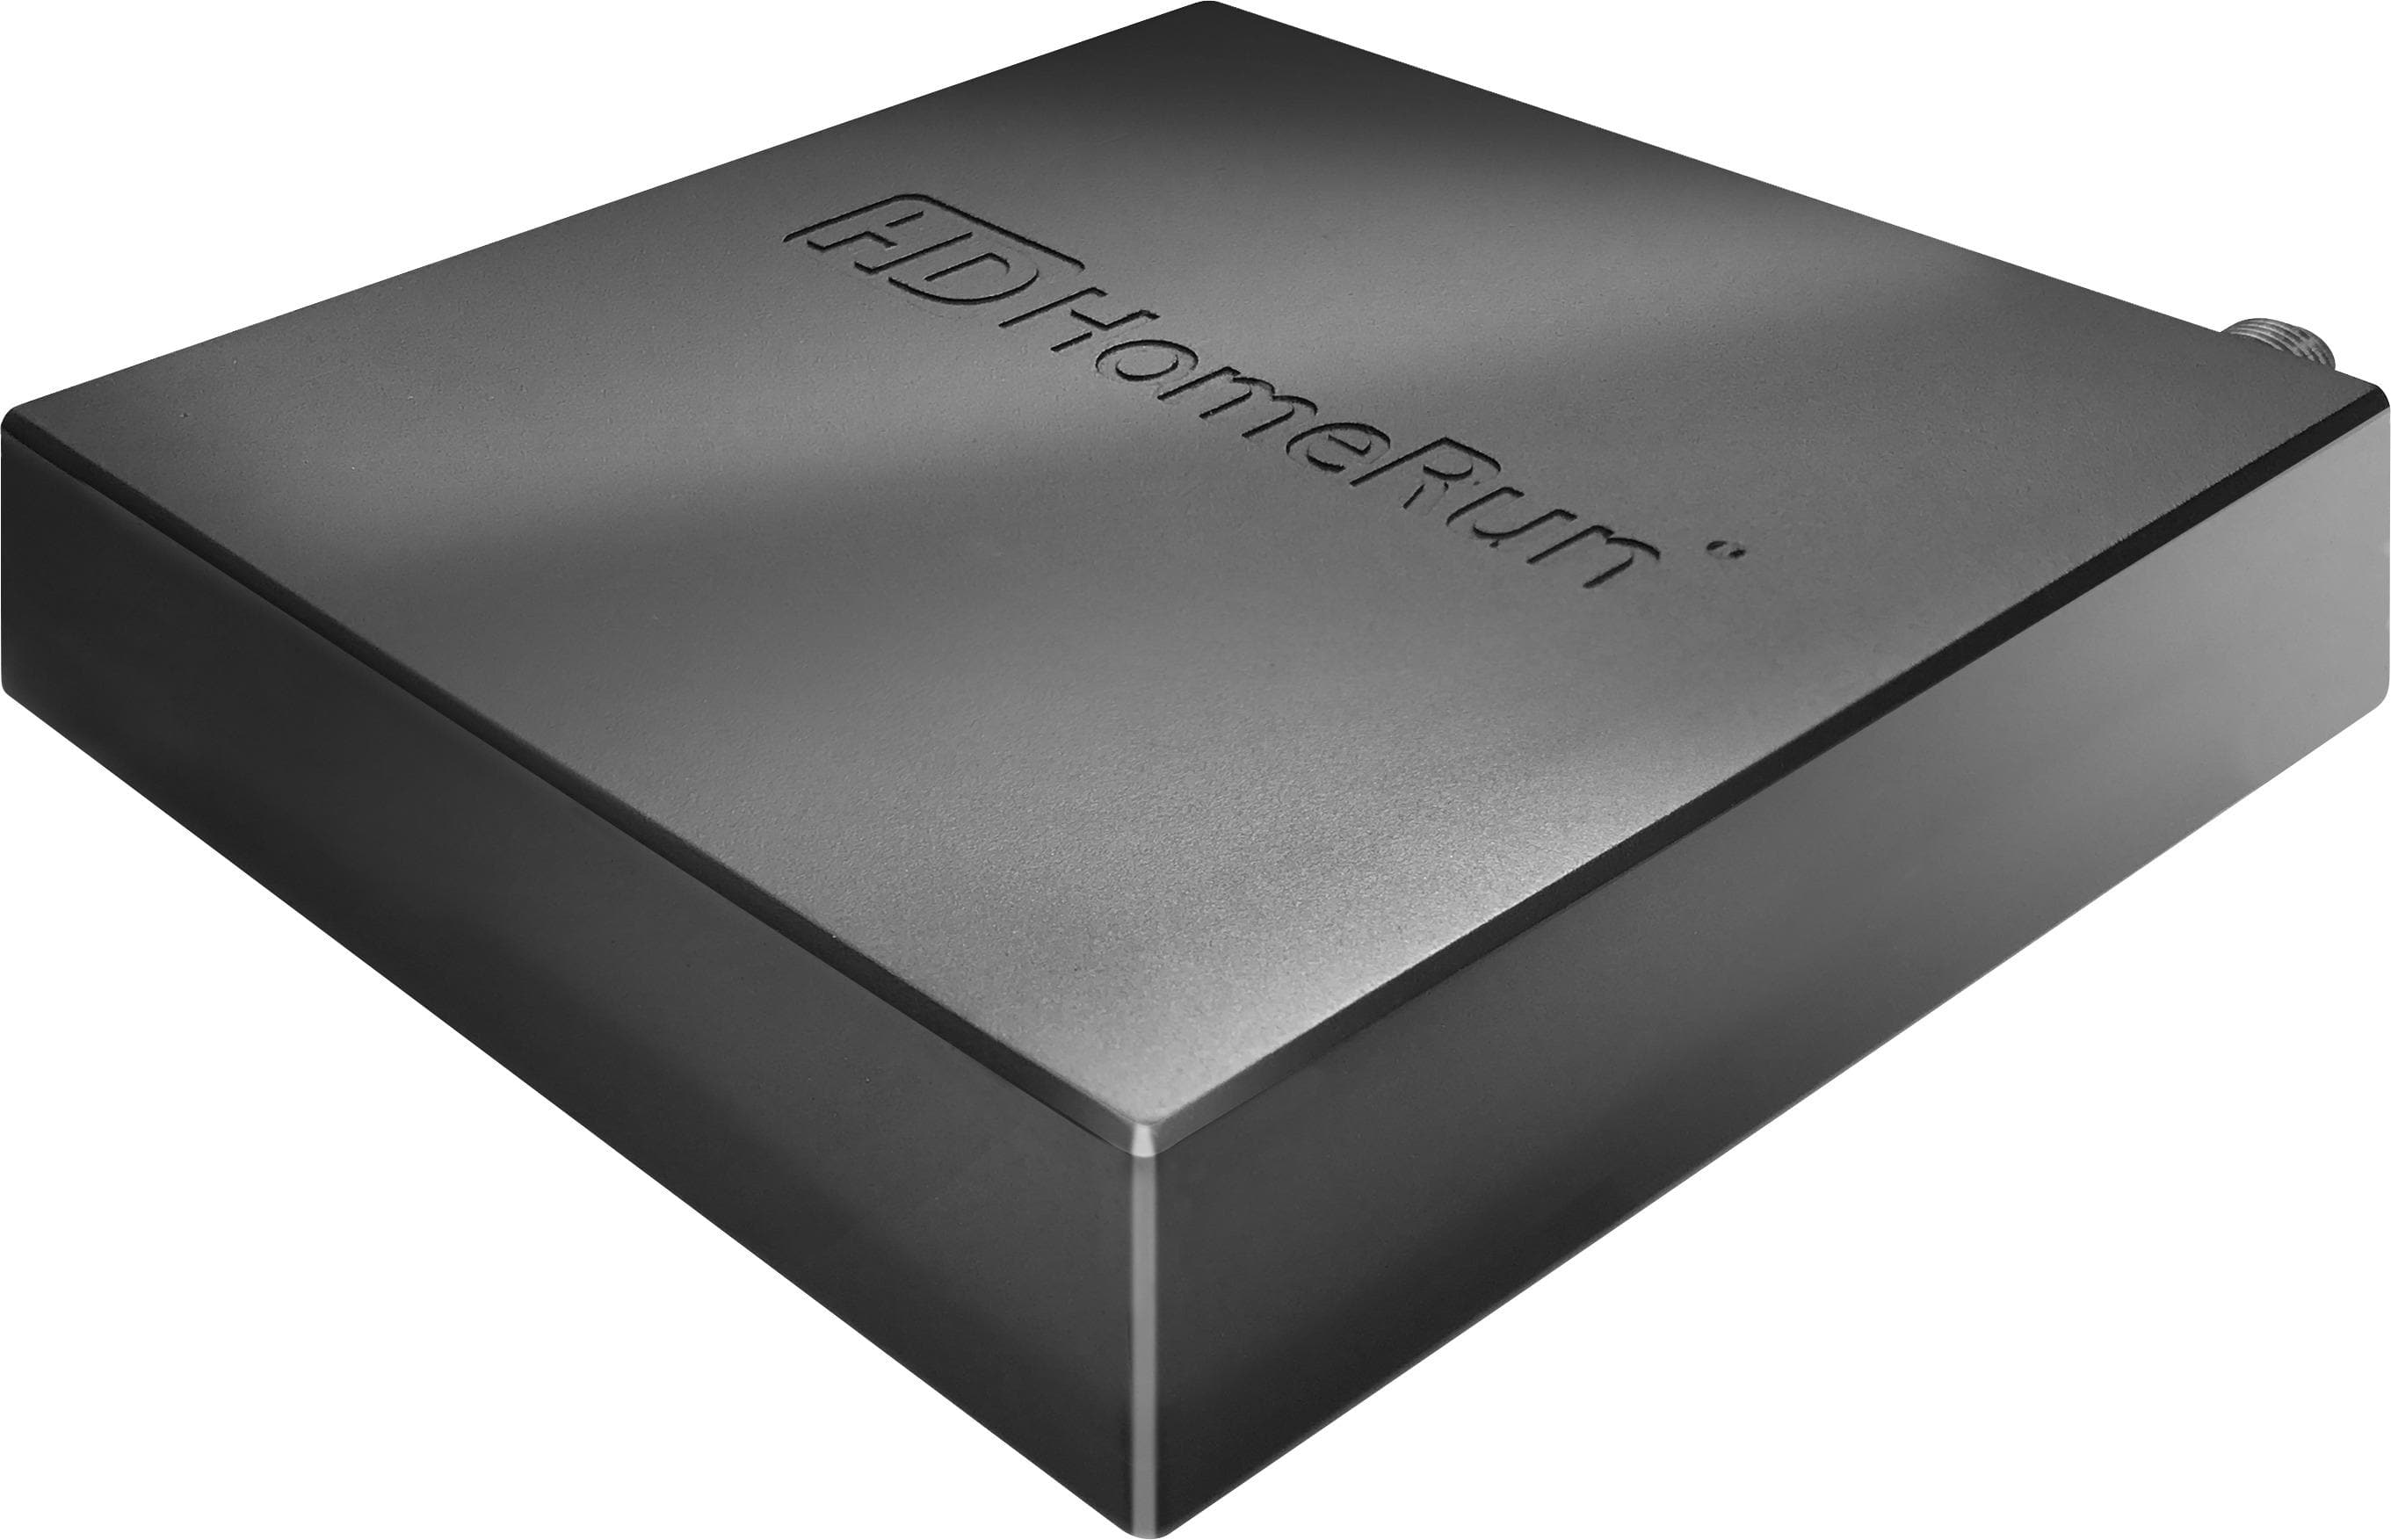 SiliconDust HDHomeRun - CONNECT Duo OTA Tuner w/2mos. Free DVR $60 @BestBuy or less